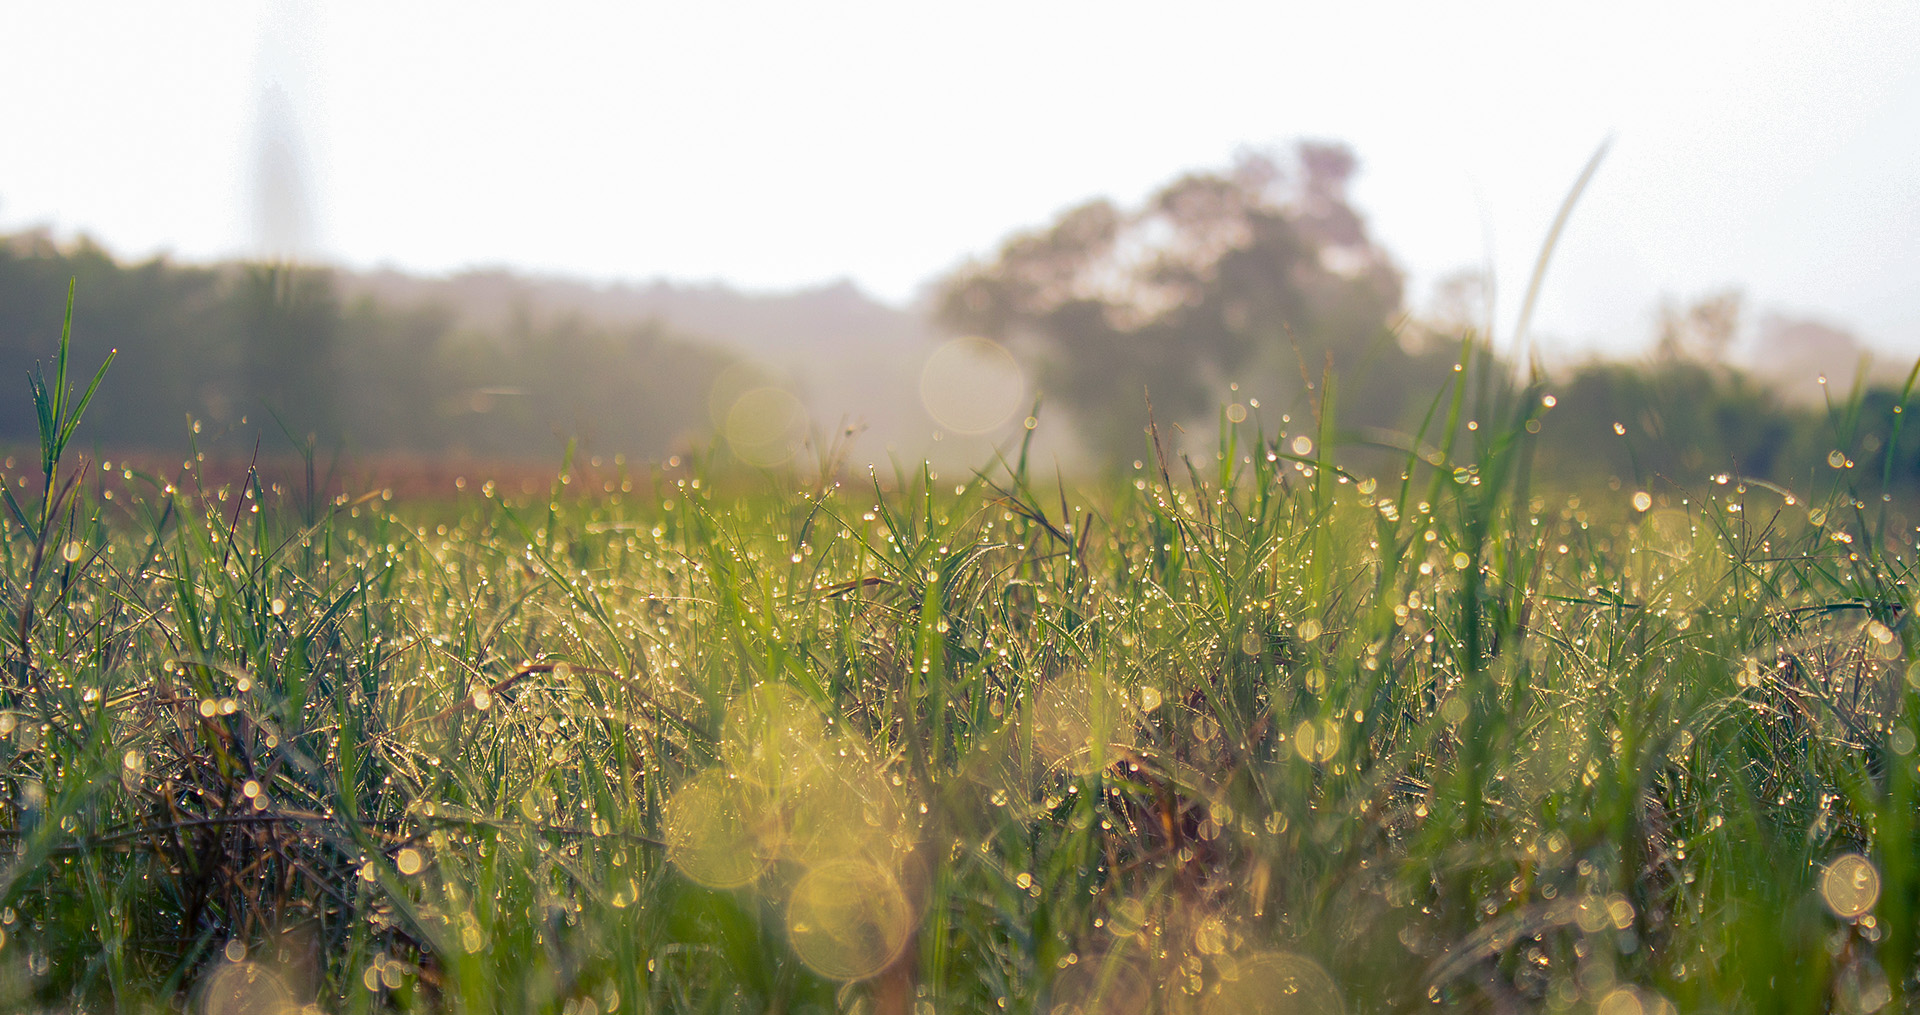 a field of grass covered in morning dew